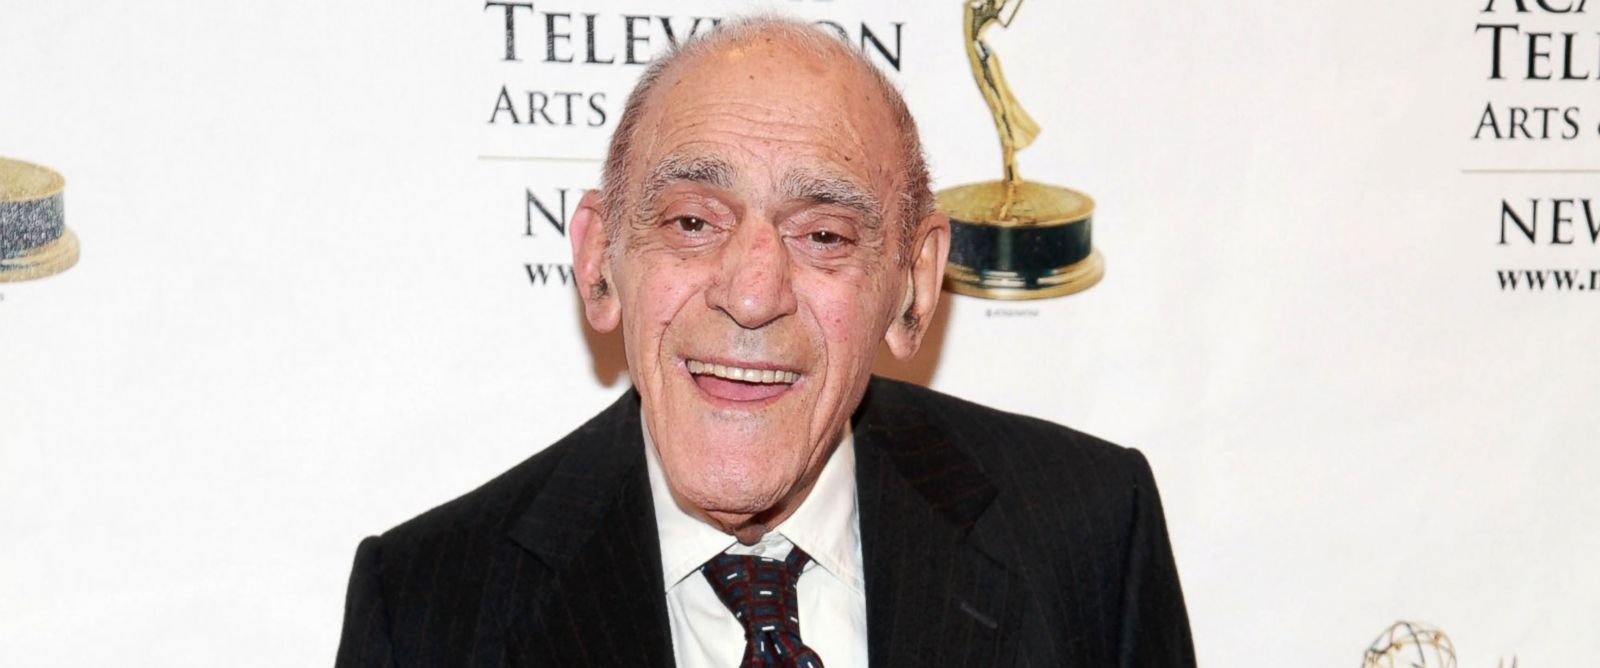 PHOTO: Abe Vigoda attends the 55th Annual New York Emmy Awards gala at the Marriott Marquis Times Square, April 1, 2012, in New York City.